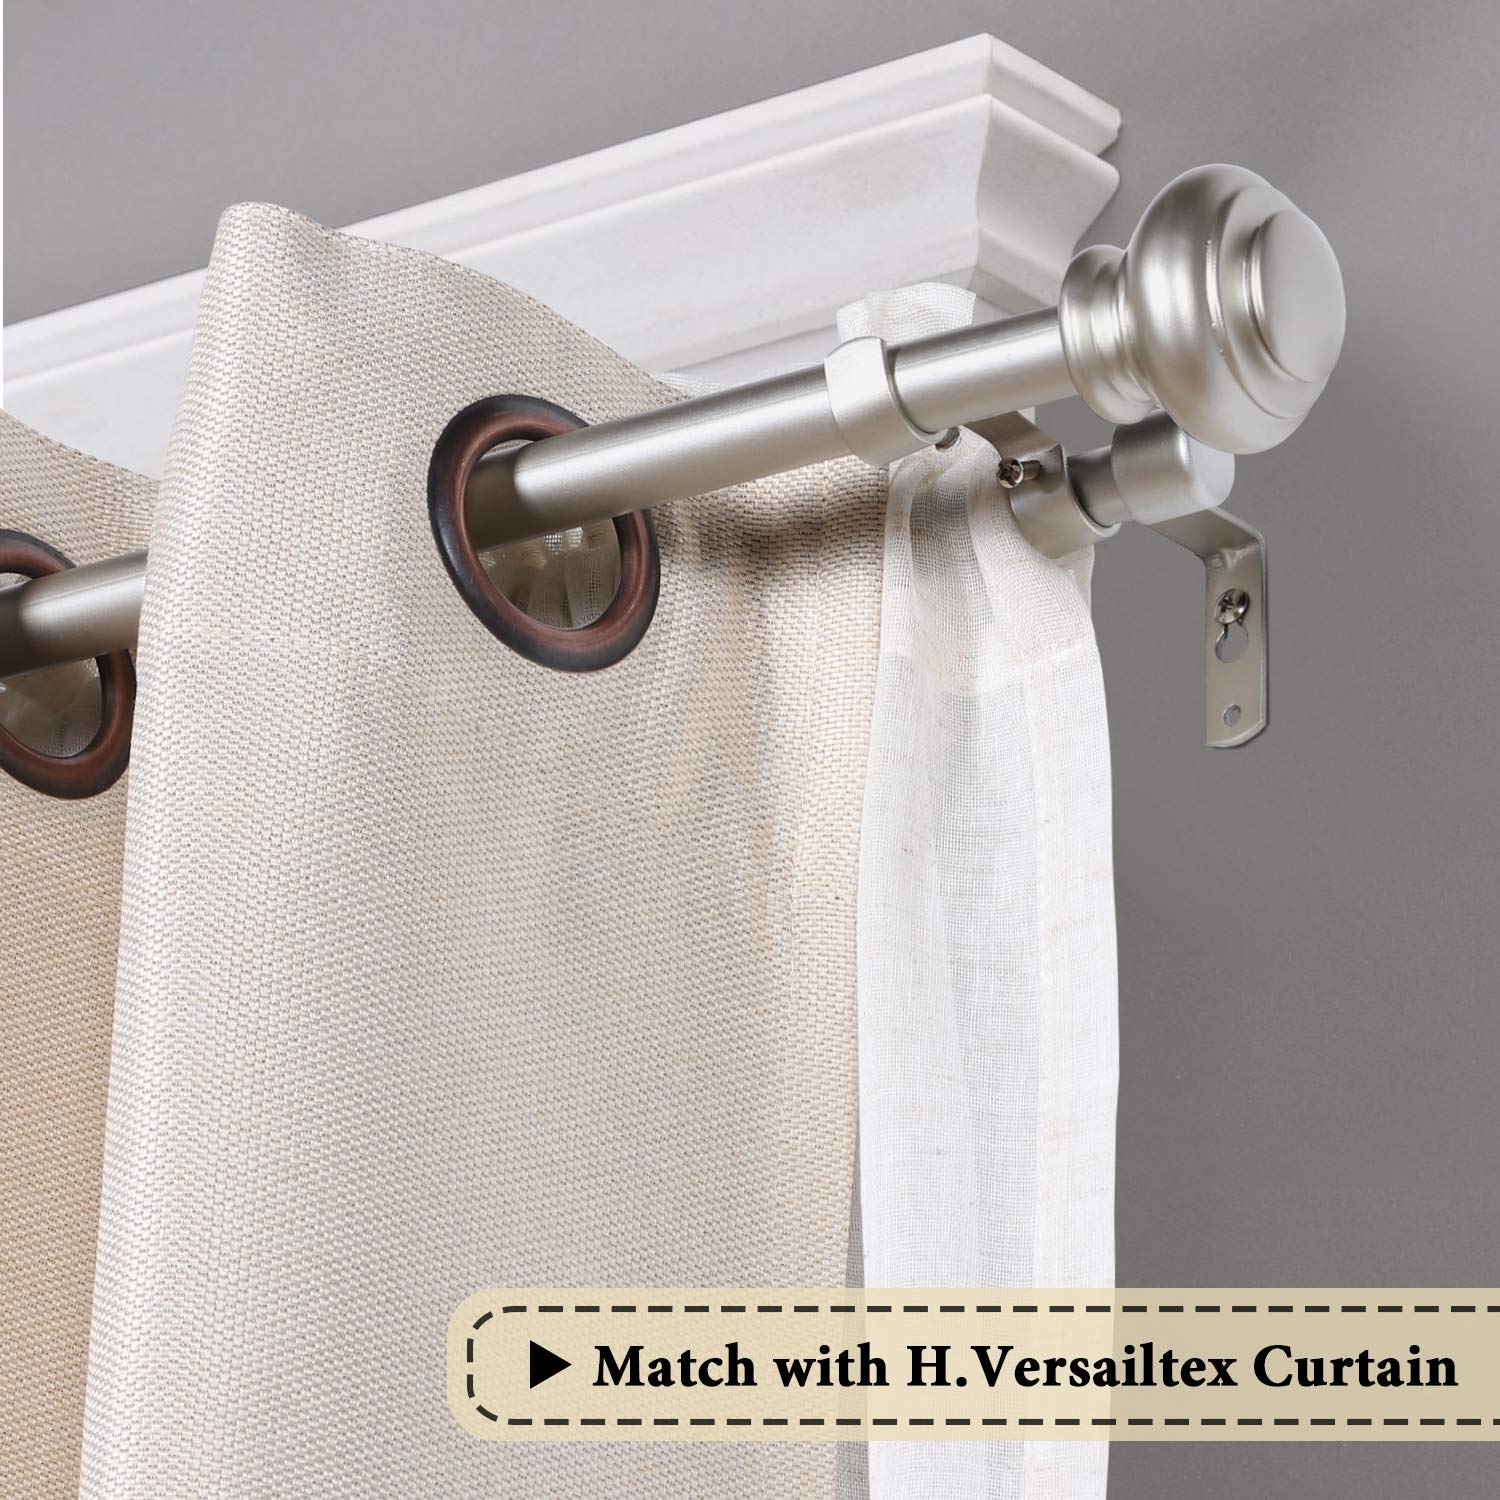 Black with Antique Bronze Finish 3//4 Inch Diameter H.VERSAILTEX Window Treatment Double Rod Set with Urn Finials Adjustable Length from 28 to 48-Inch